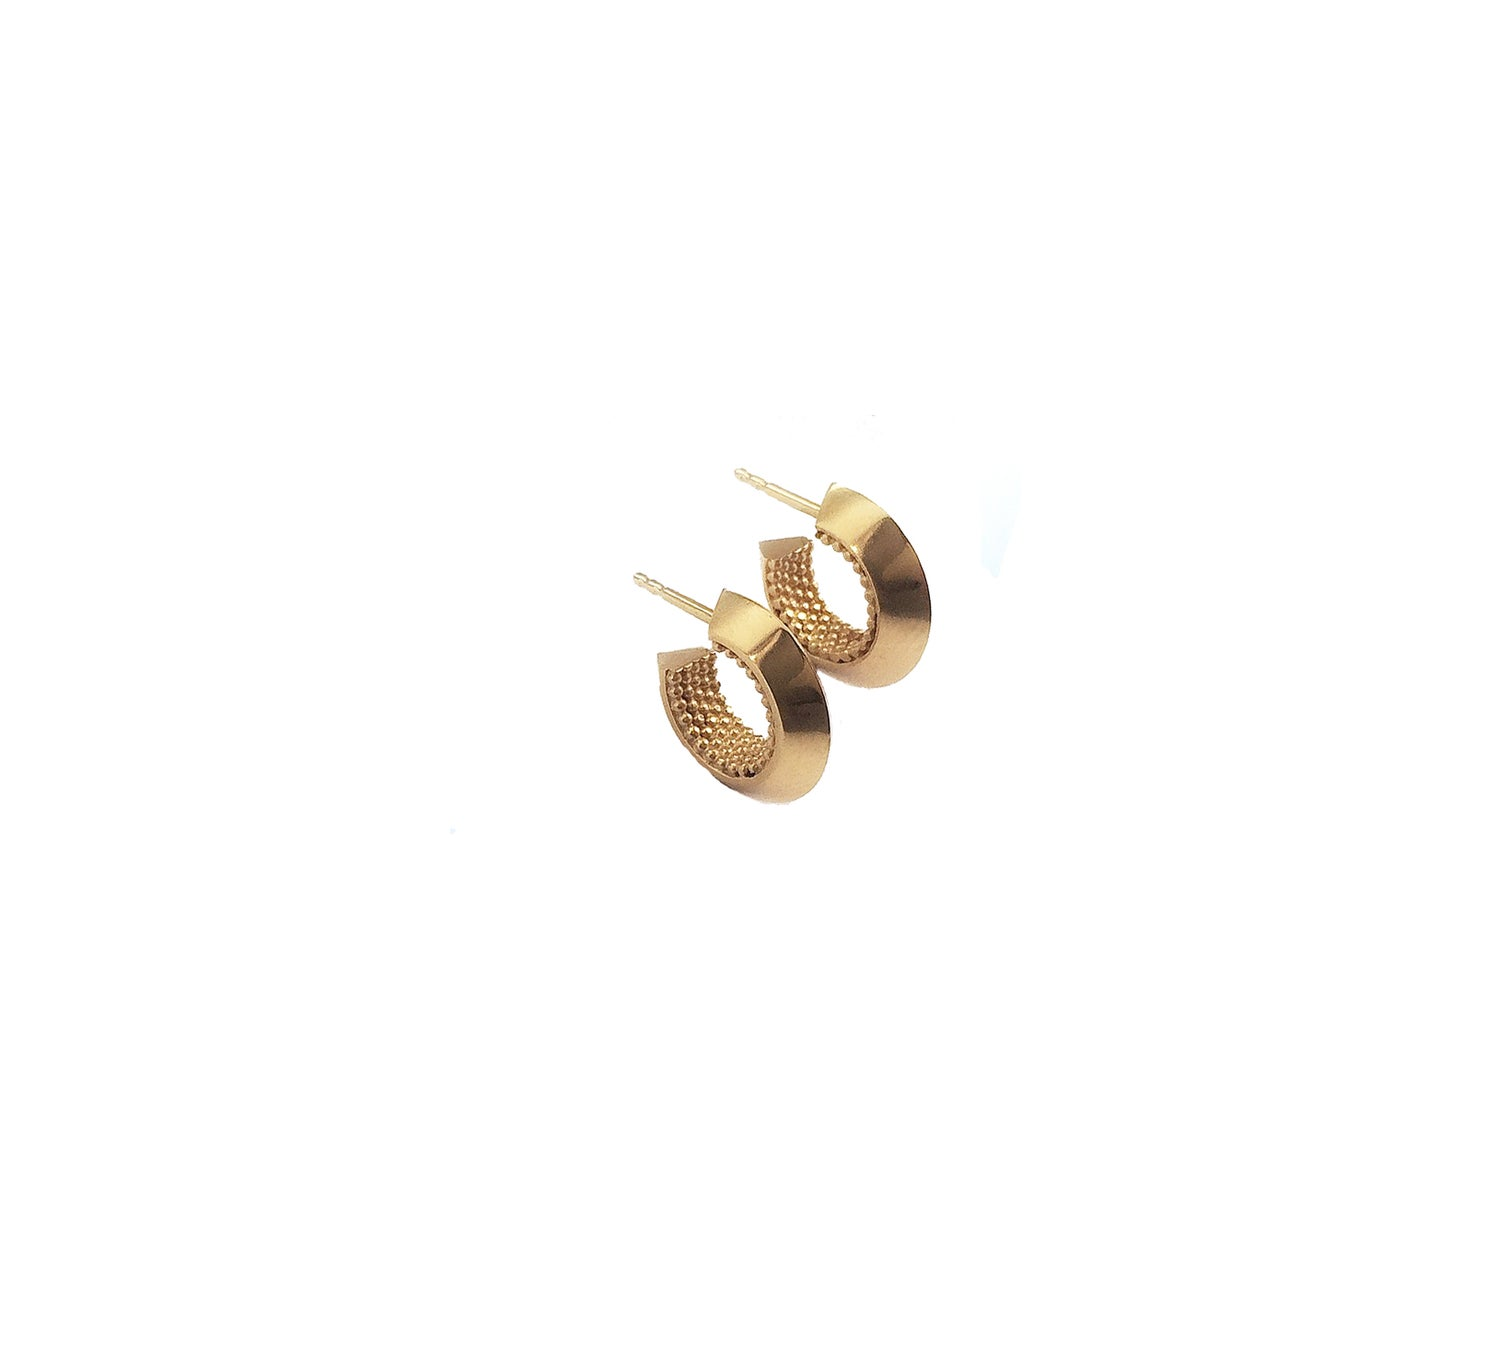 Image of Gandharva dot earrings